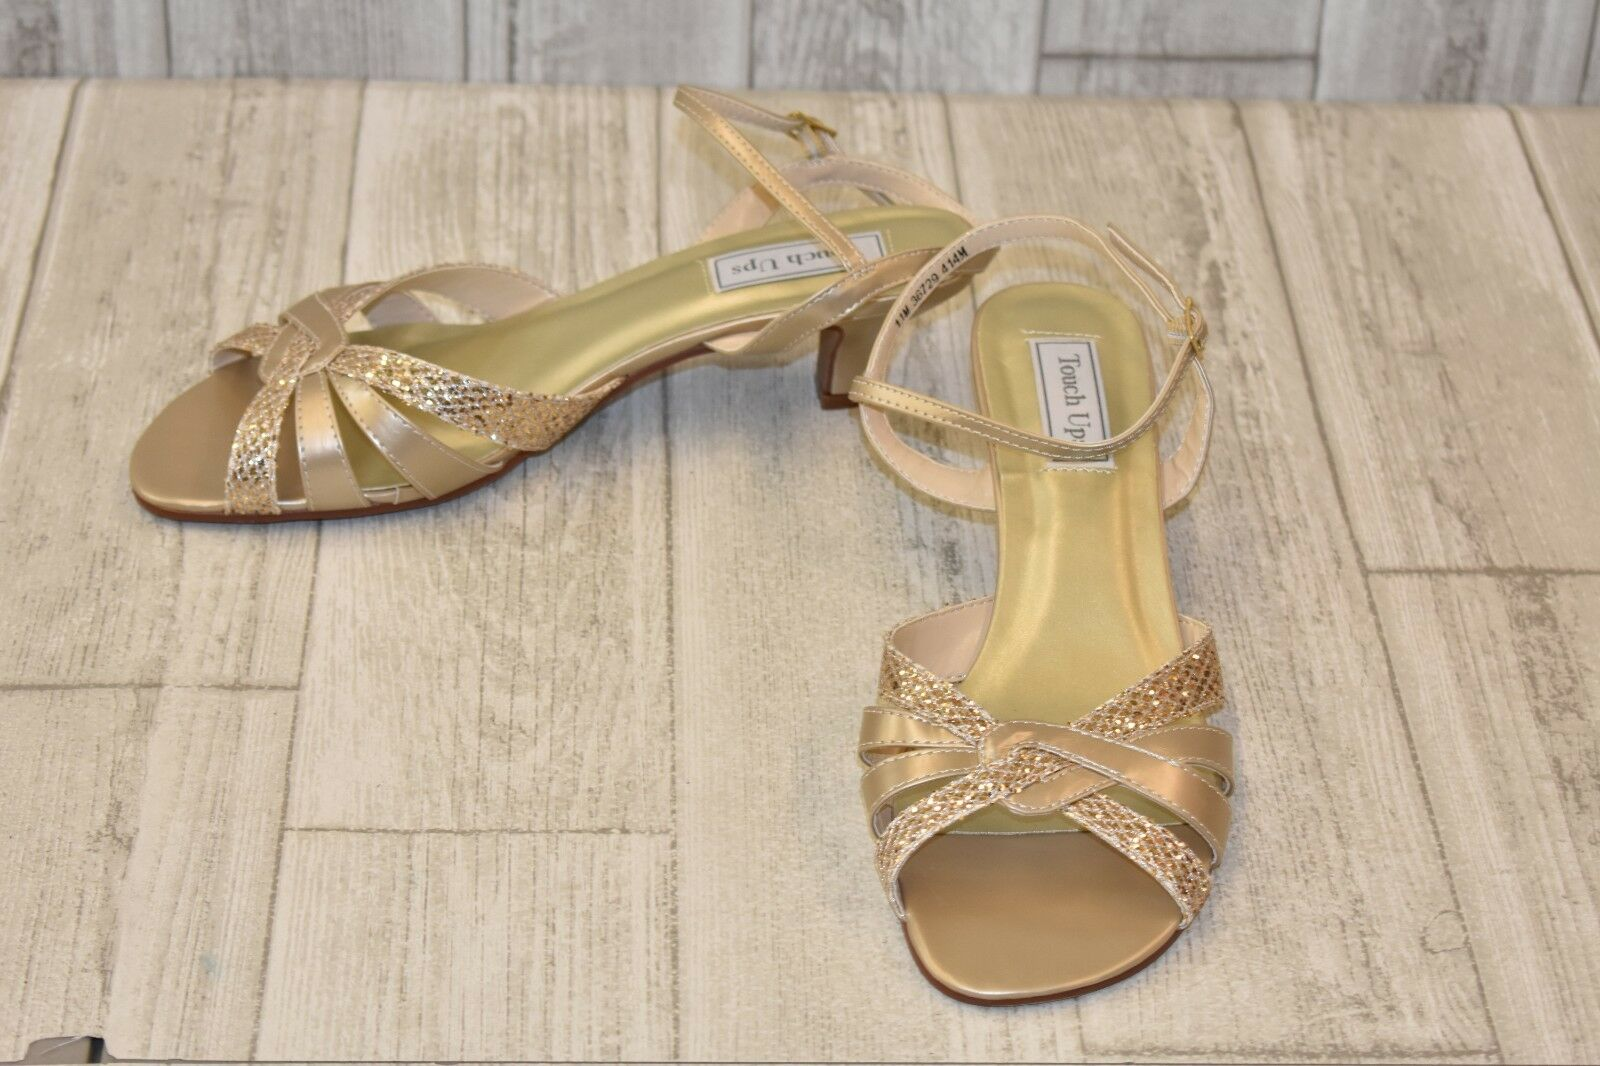 Touch Ups Jane Ankle-Strap Sandal - Women's Size 11M gold